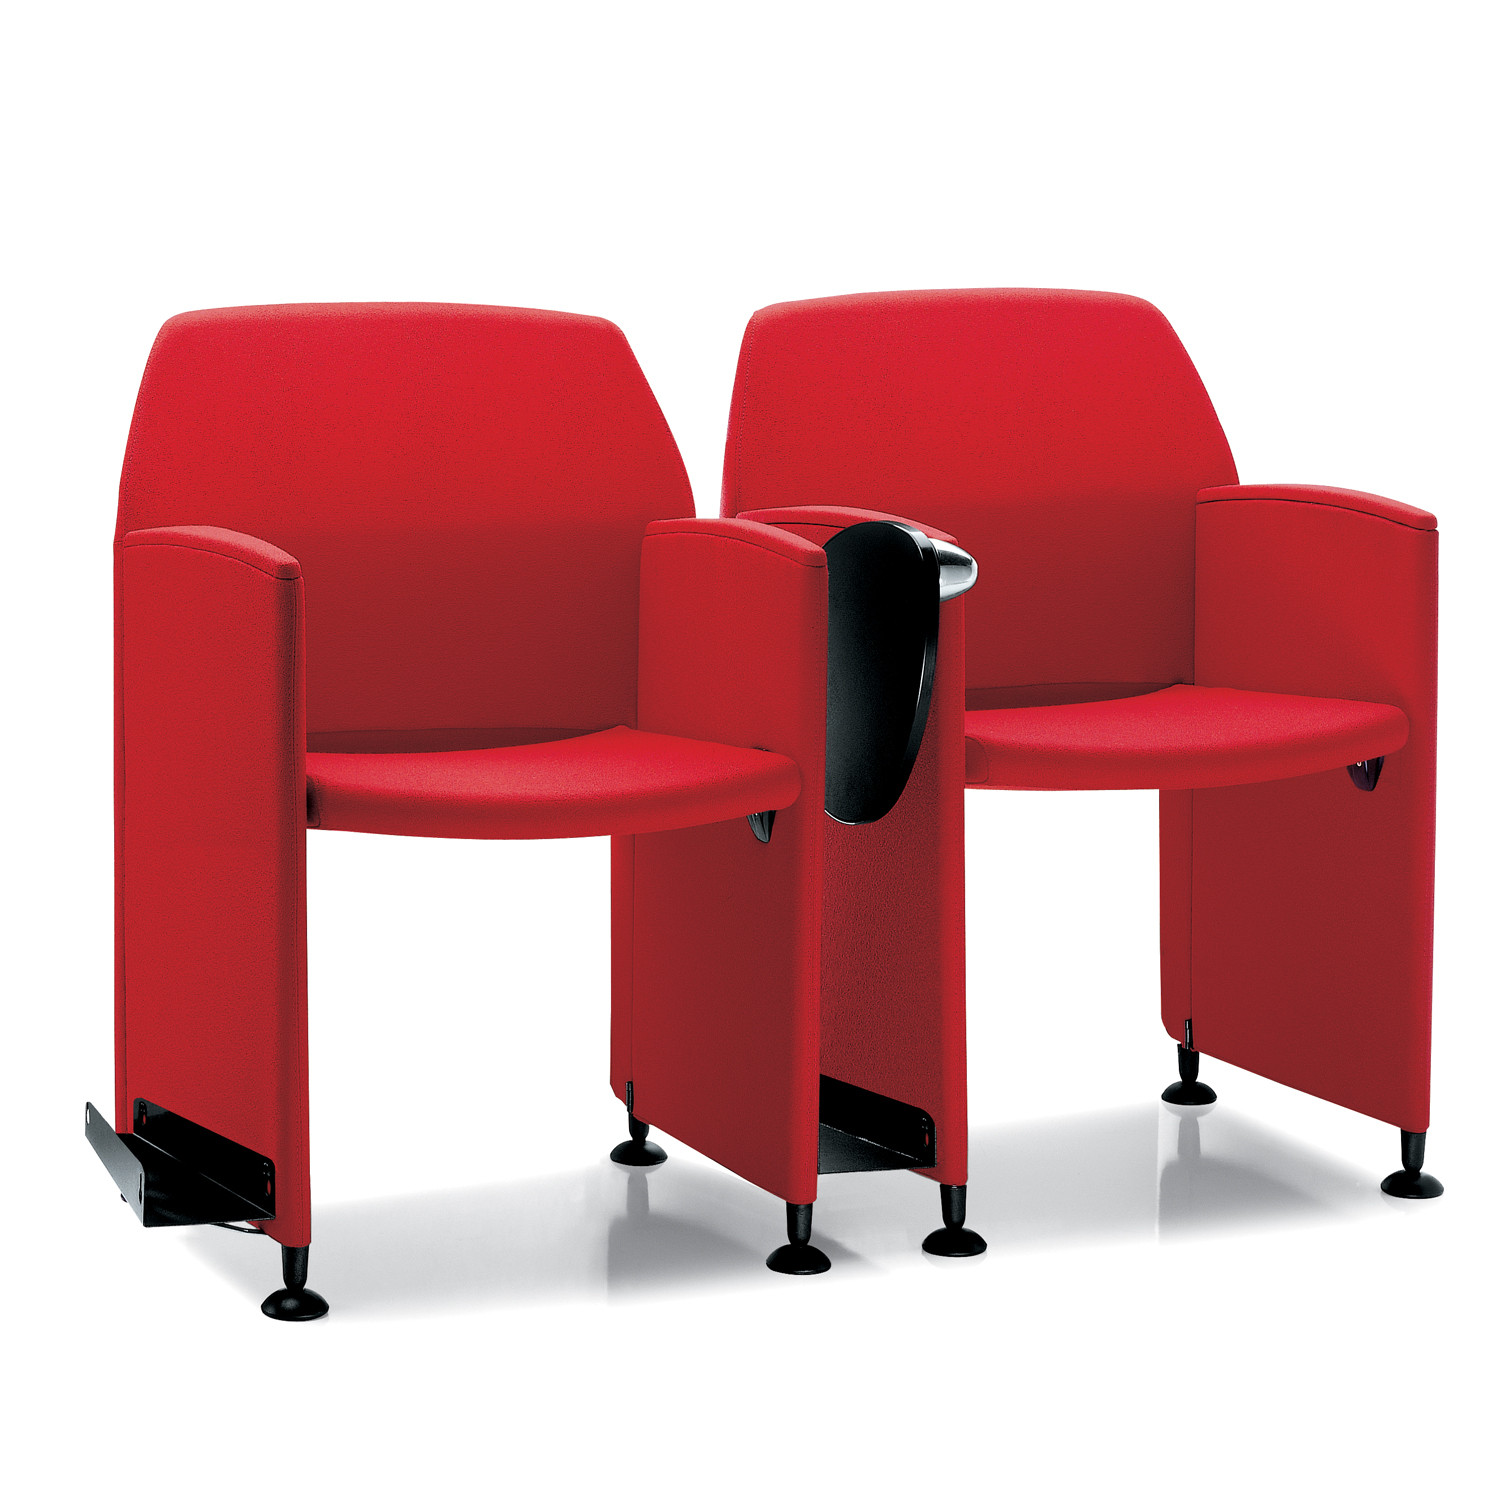 Papillon Chairs linked